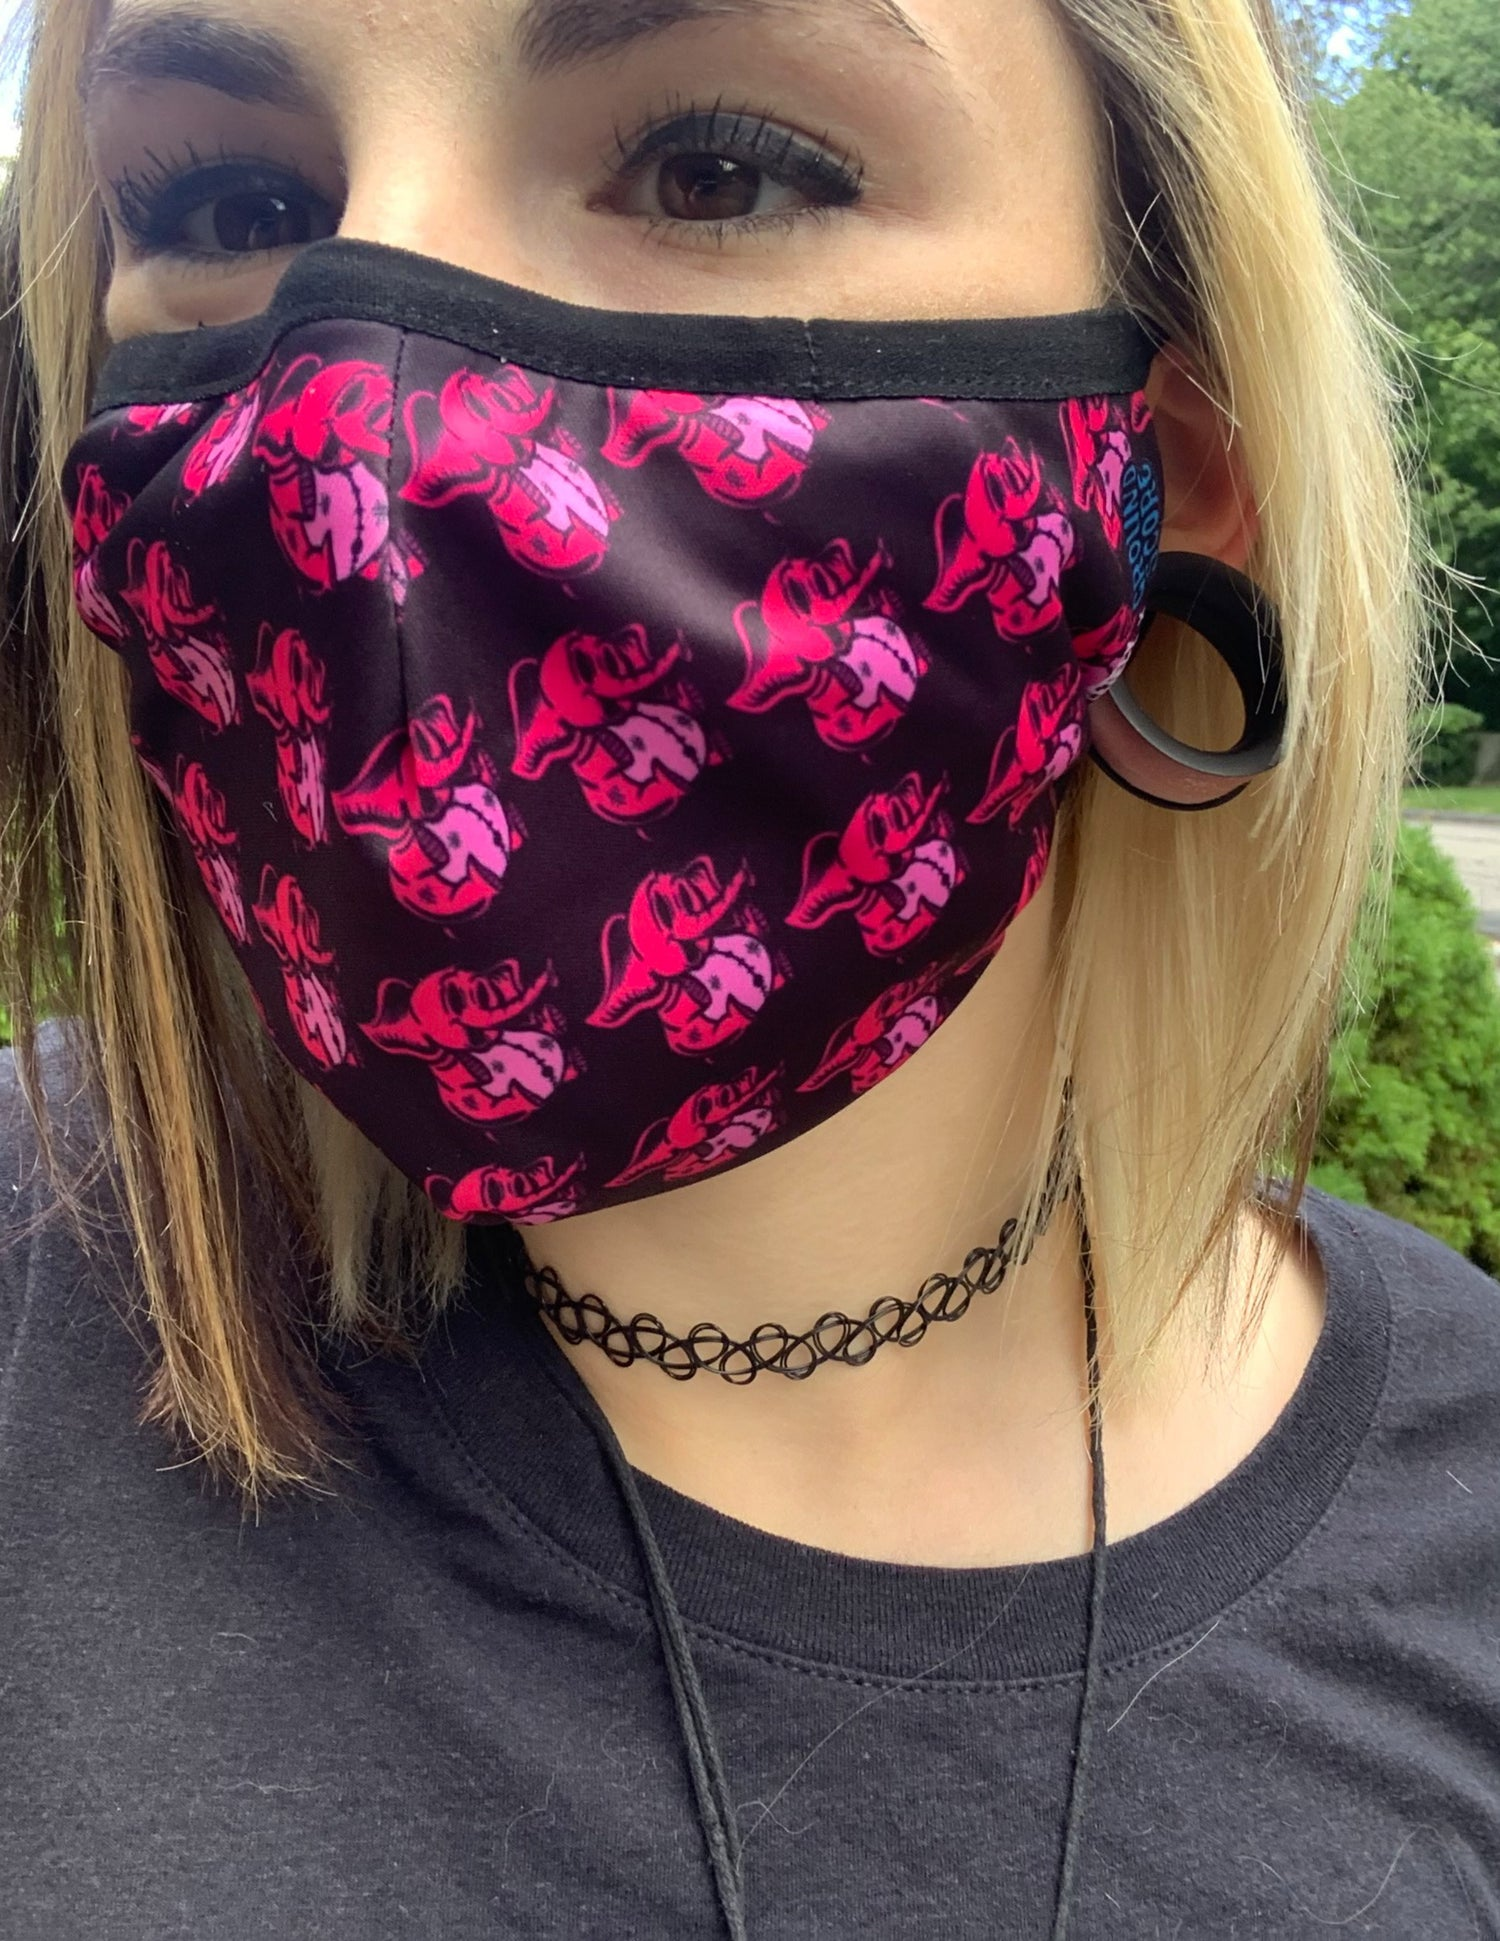 Completely Bonkers - Pink Elephants Mask (Buy 1, Get 1 Free)